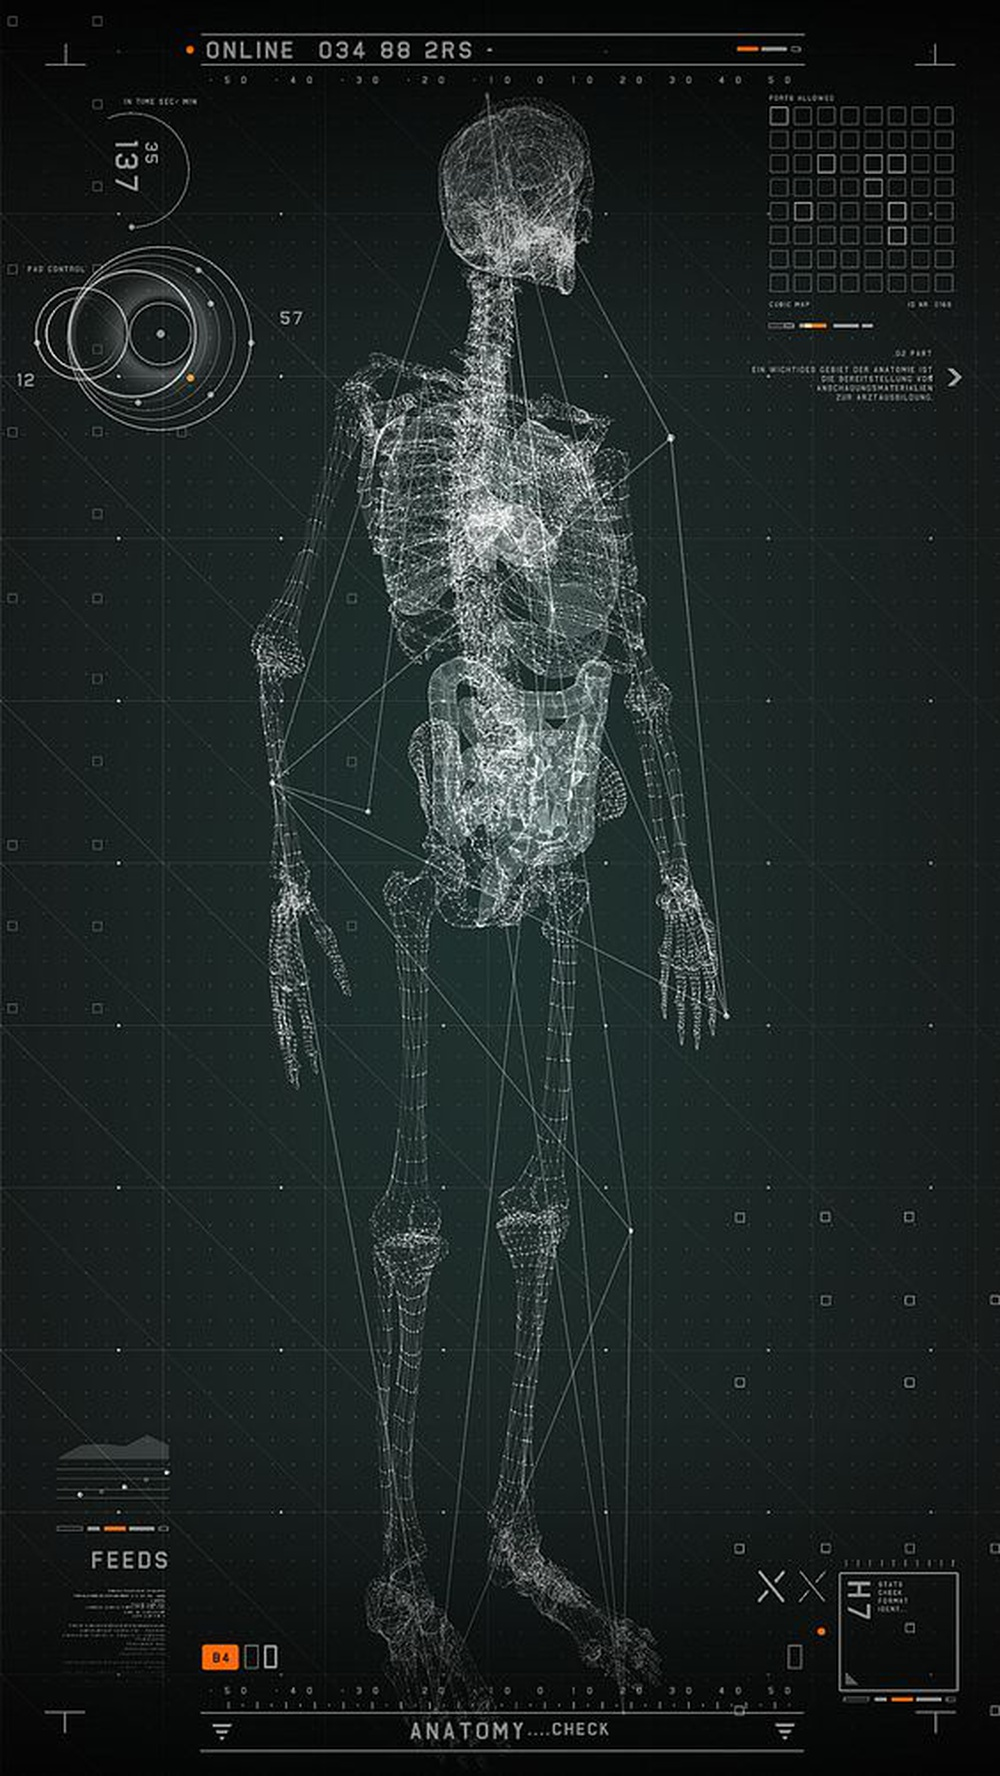 [Holon] Humans are simultaneously a separate individual and a part of a larger organism